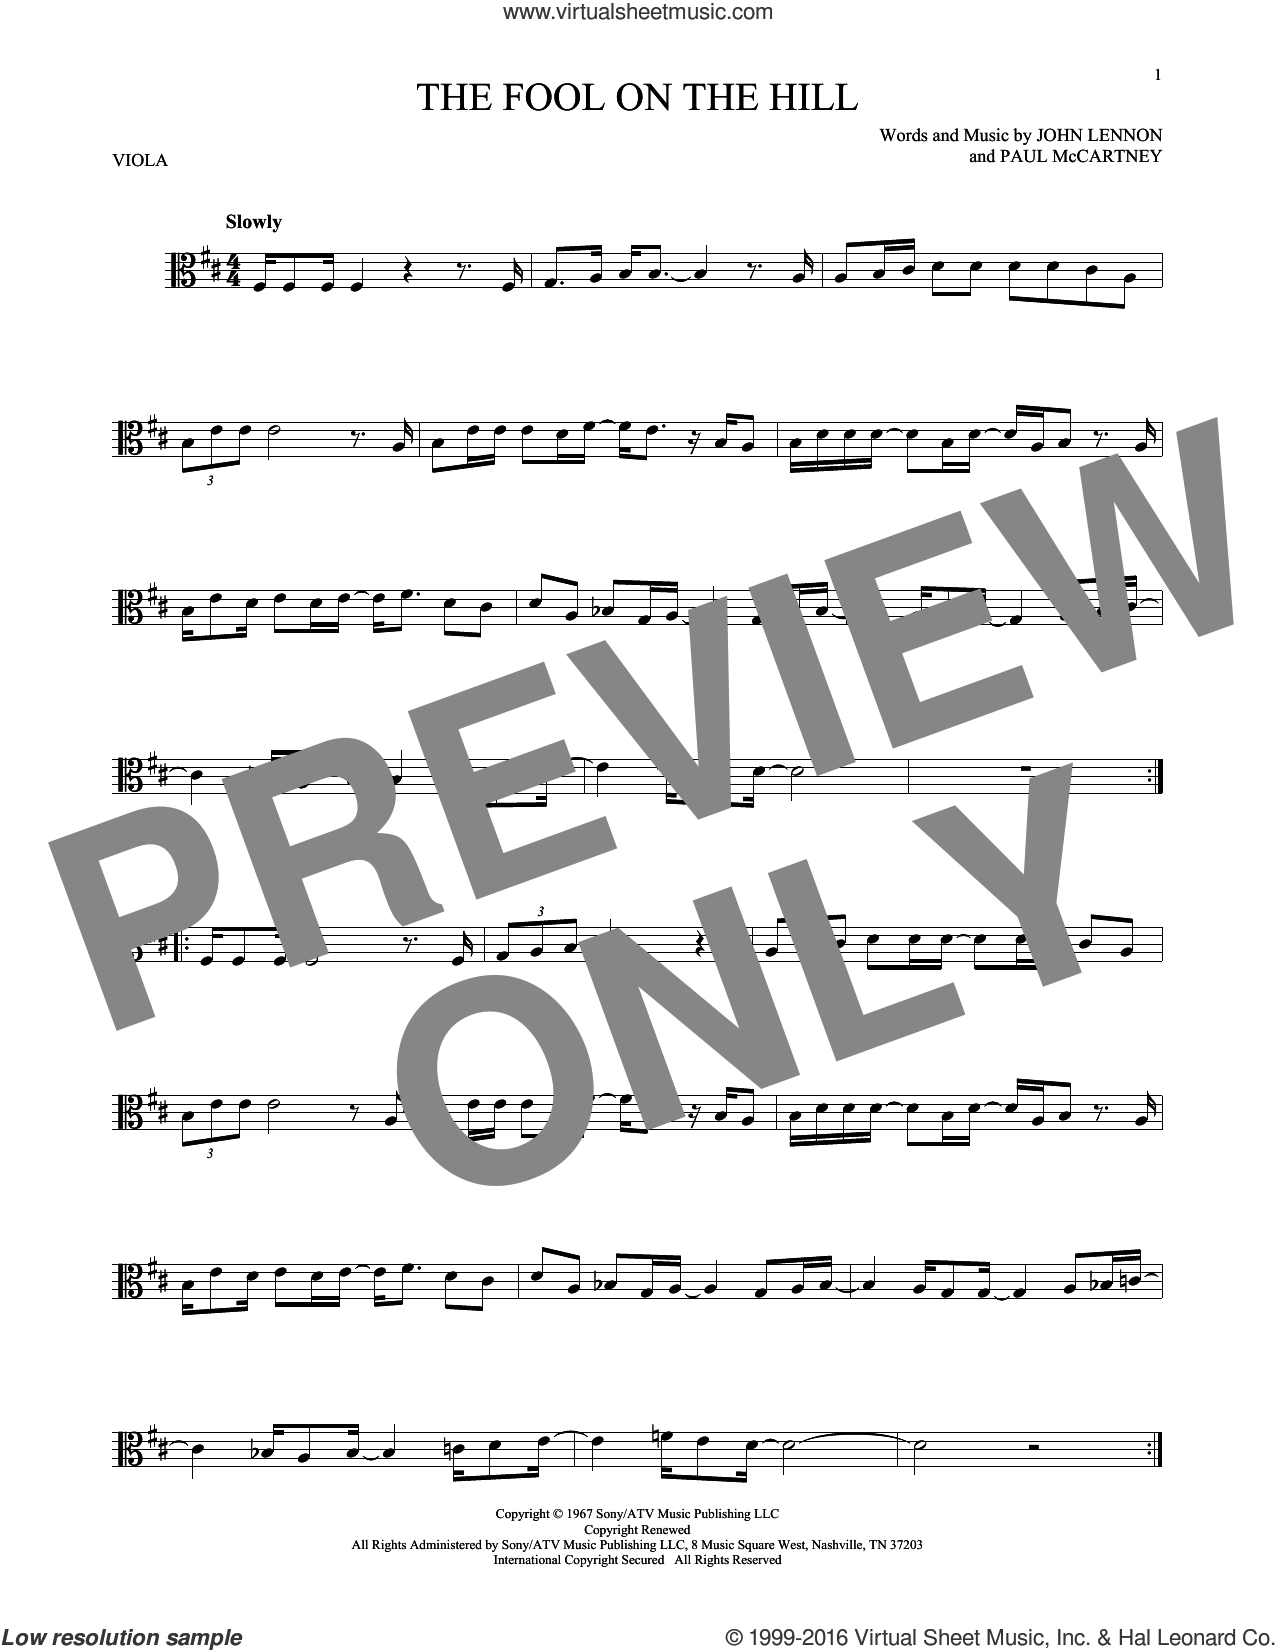 The Fool On The Hill sheet music for viola solo by The Beatles, John Lennon and Paul McCartney, intermediate skill level